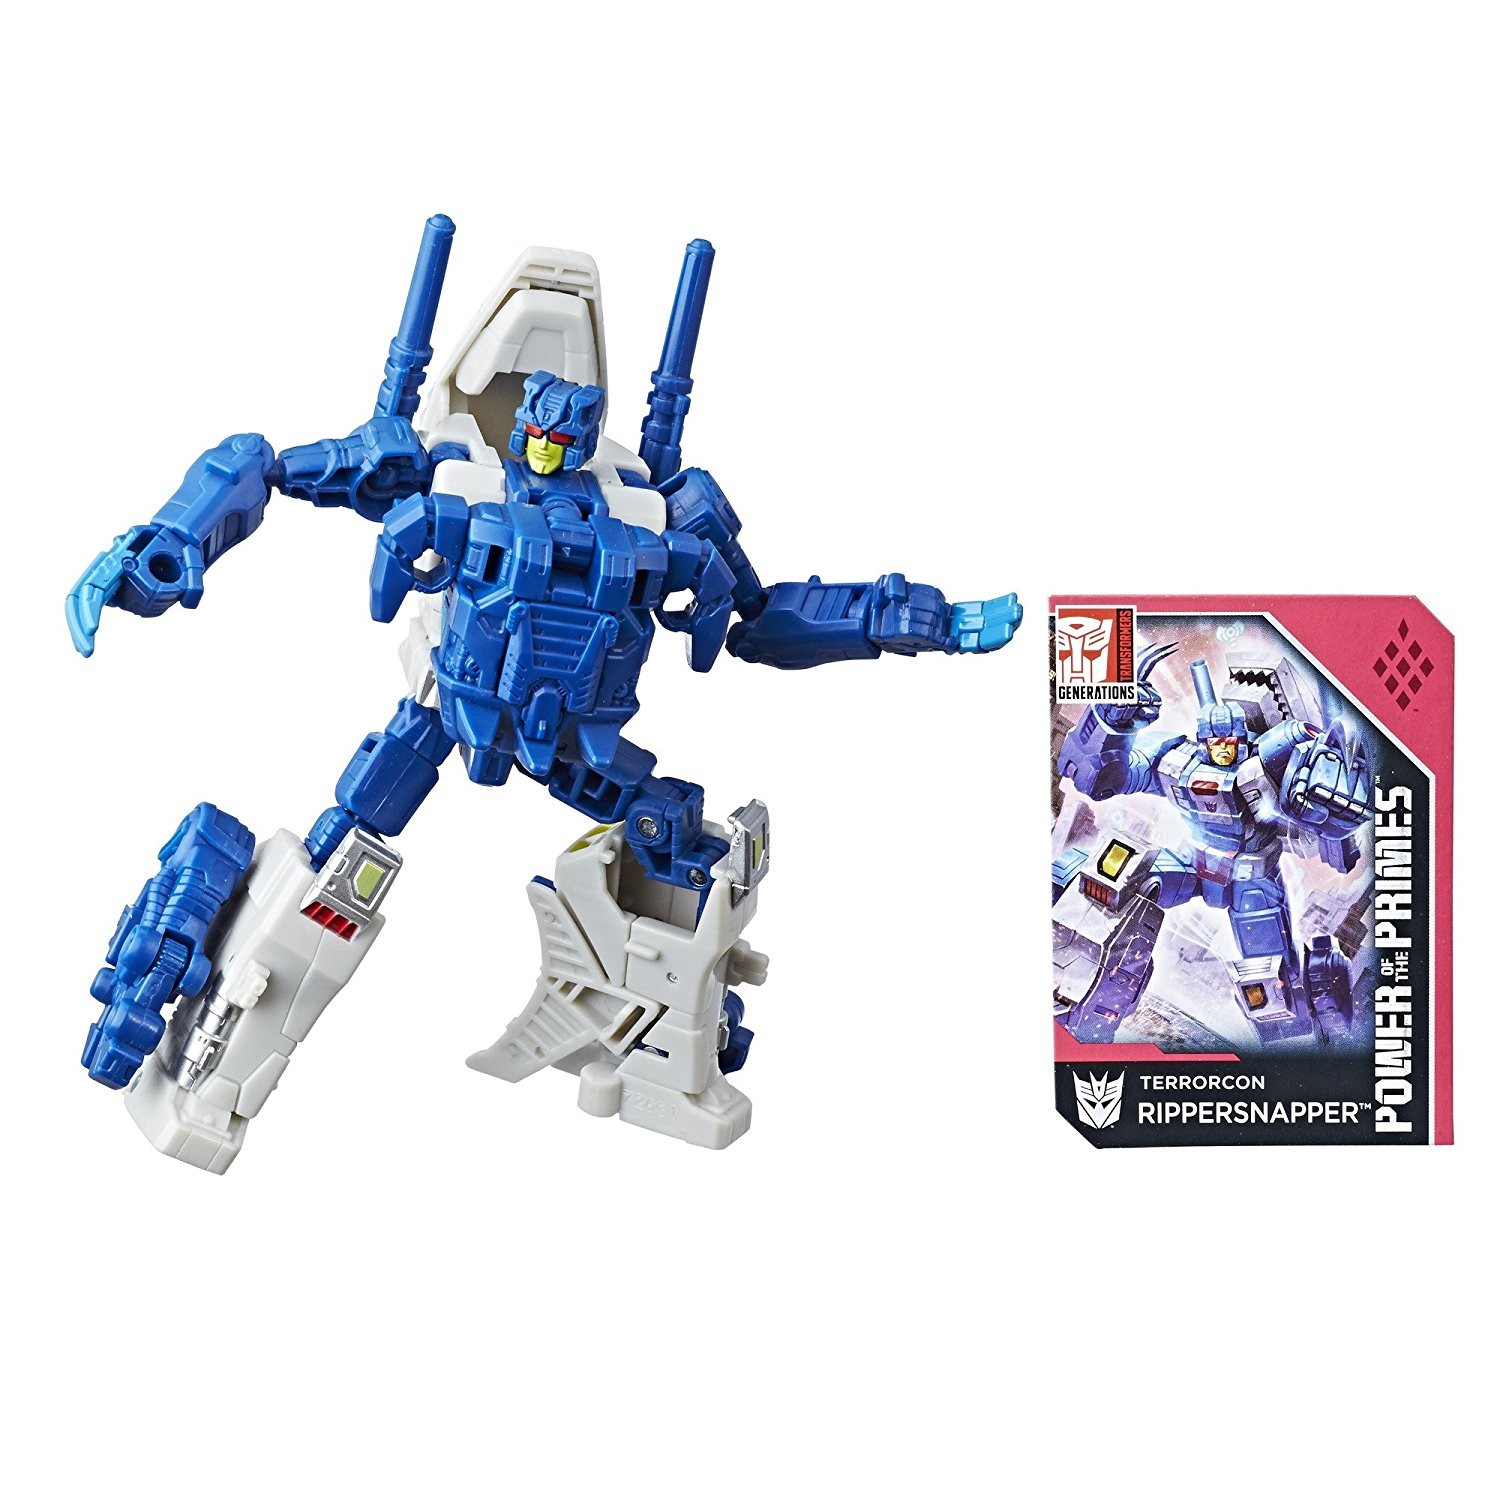 Transformers News: Transformers Power of the Primes Wave 2 Deluxes Showing up Online for 16.99